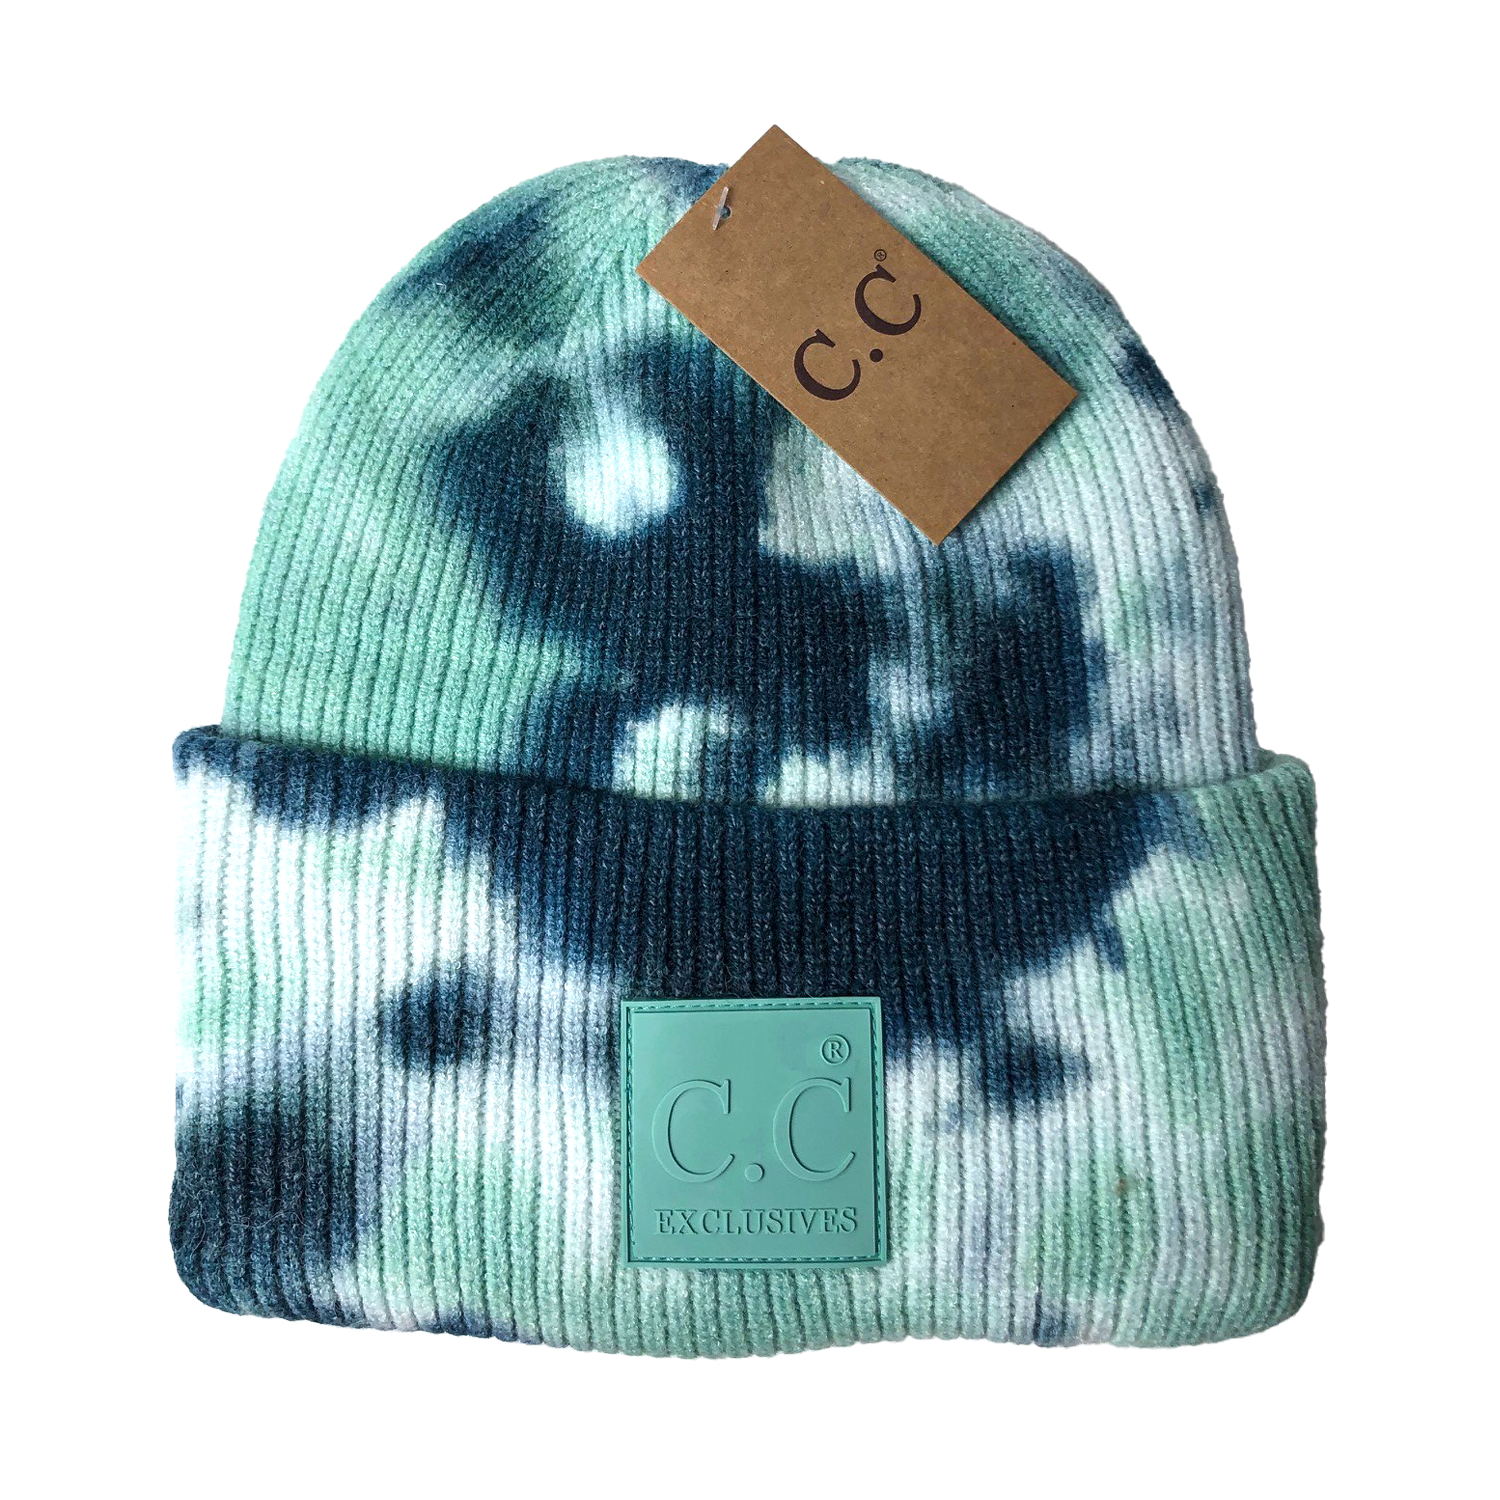 HAT-7380 Tie Dye Beanie with C.C Rubber Patch - Deep Teal/Sea Green